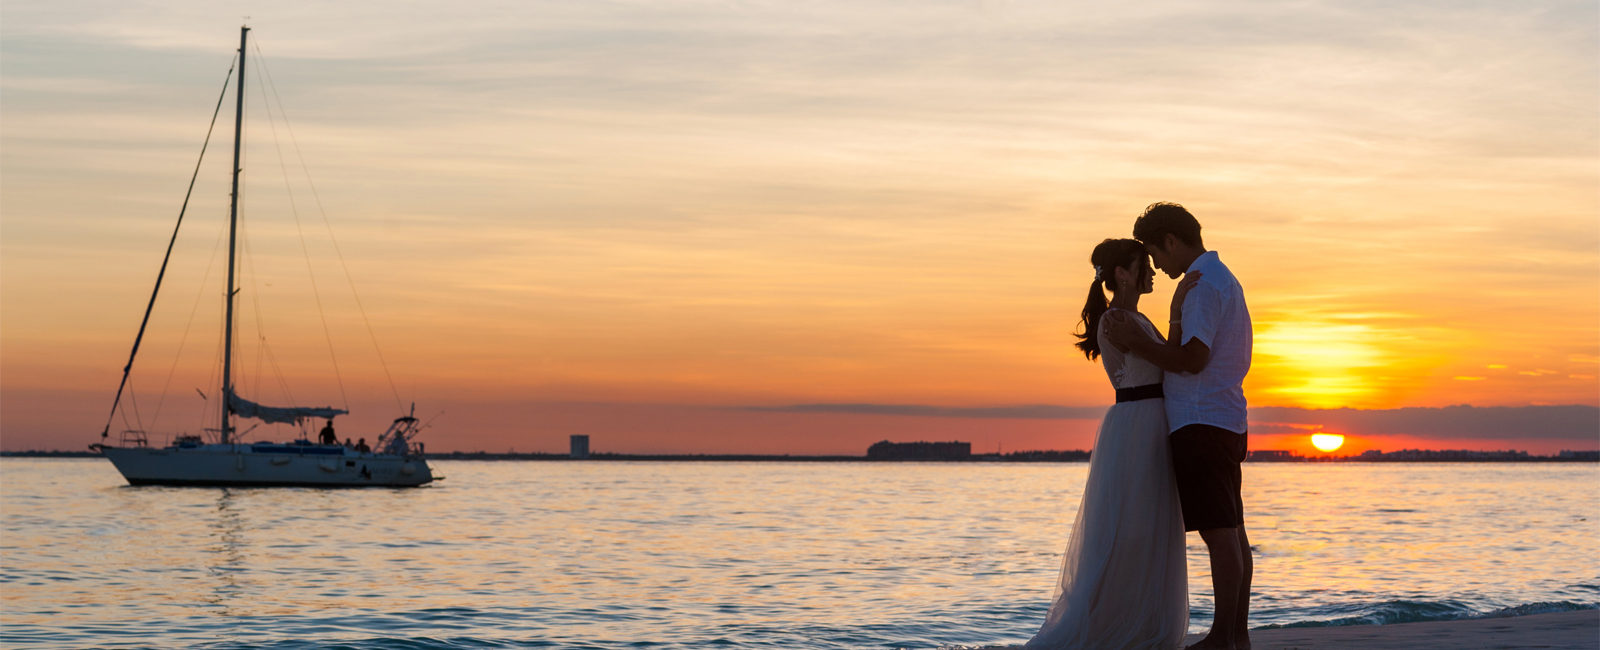 Isla Mujeres photographer, wedding, family, engagements